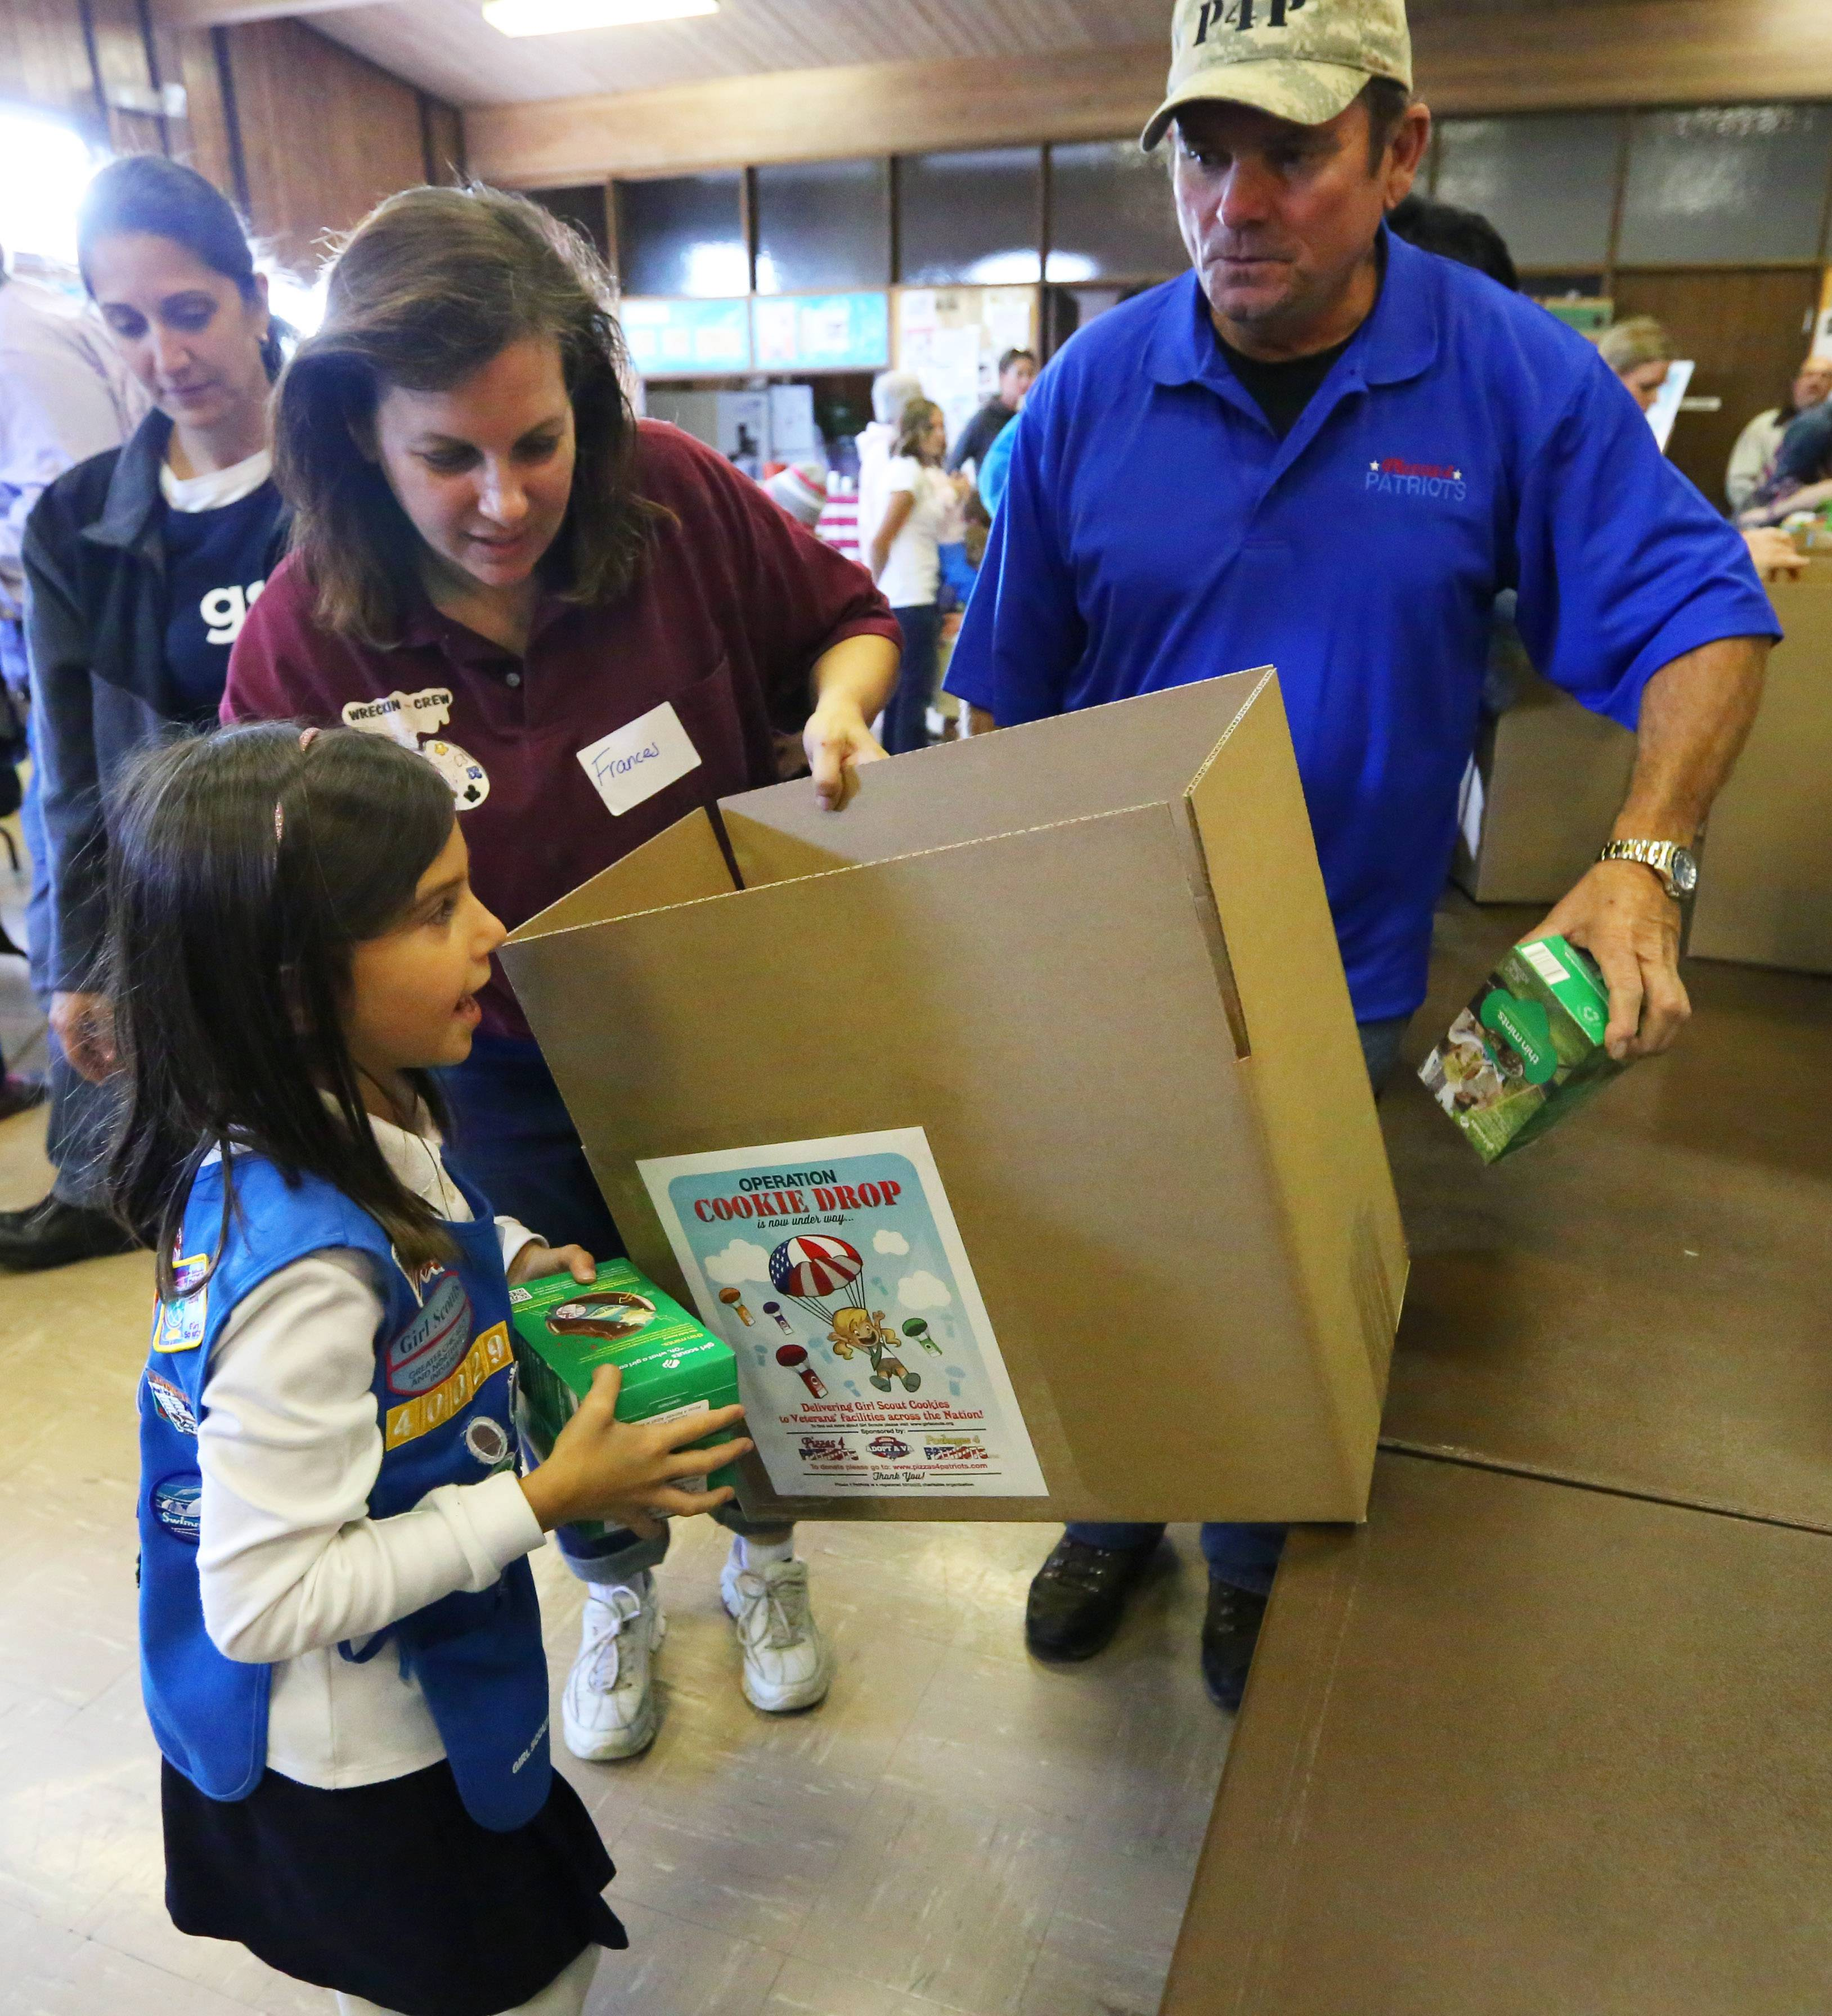 Learning how to pack 40 boxes of cookies into one shipping box, Immacolata Papucci, 7, of Elk Grove Village, follows the advice of Operation Cookie Drop leader Frances Lehning and Pizza 4 Patriots founder Mark Evans.